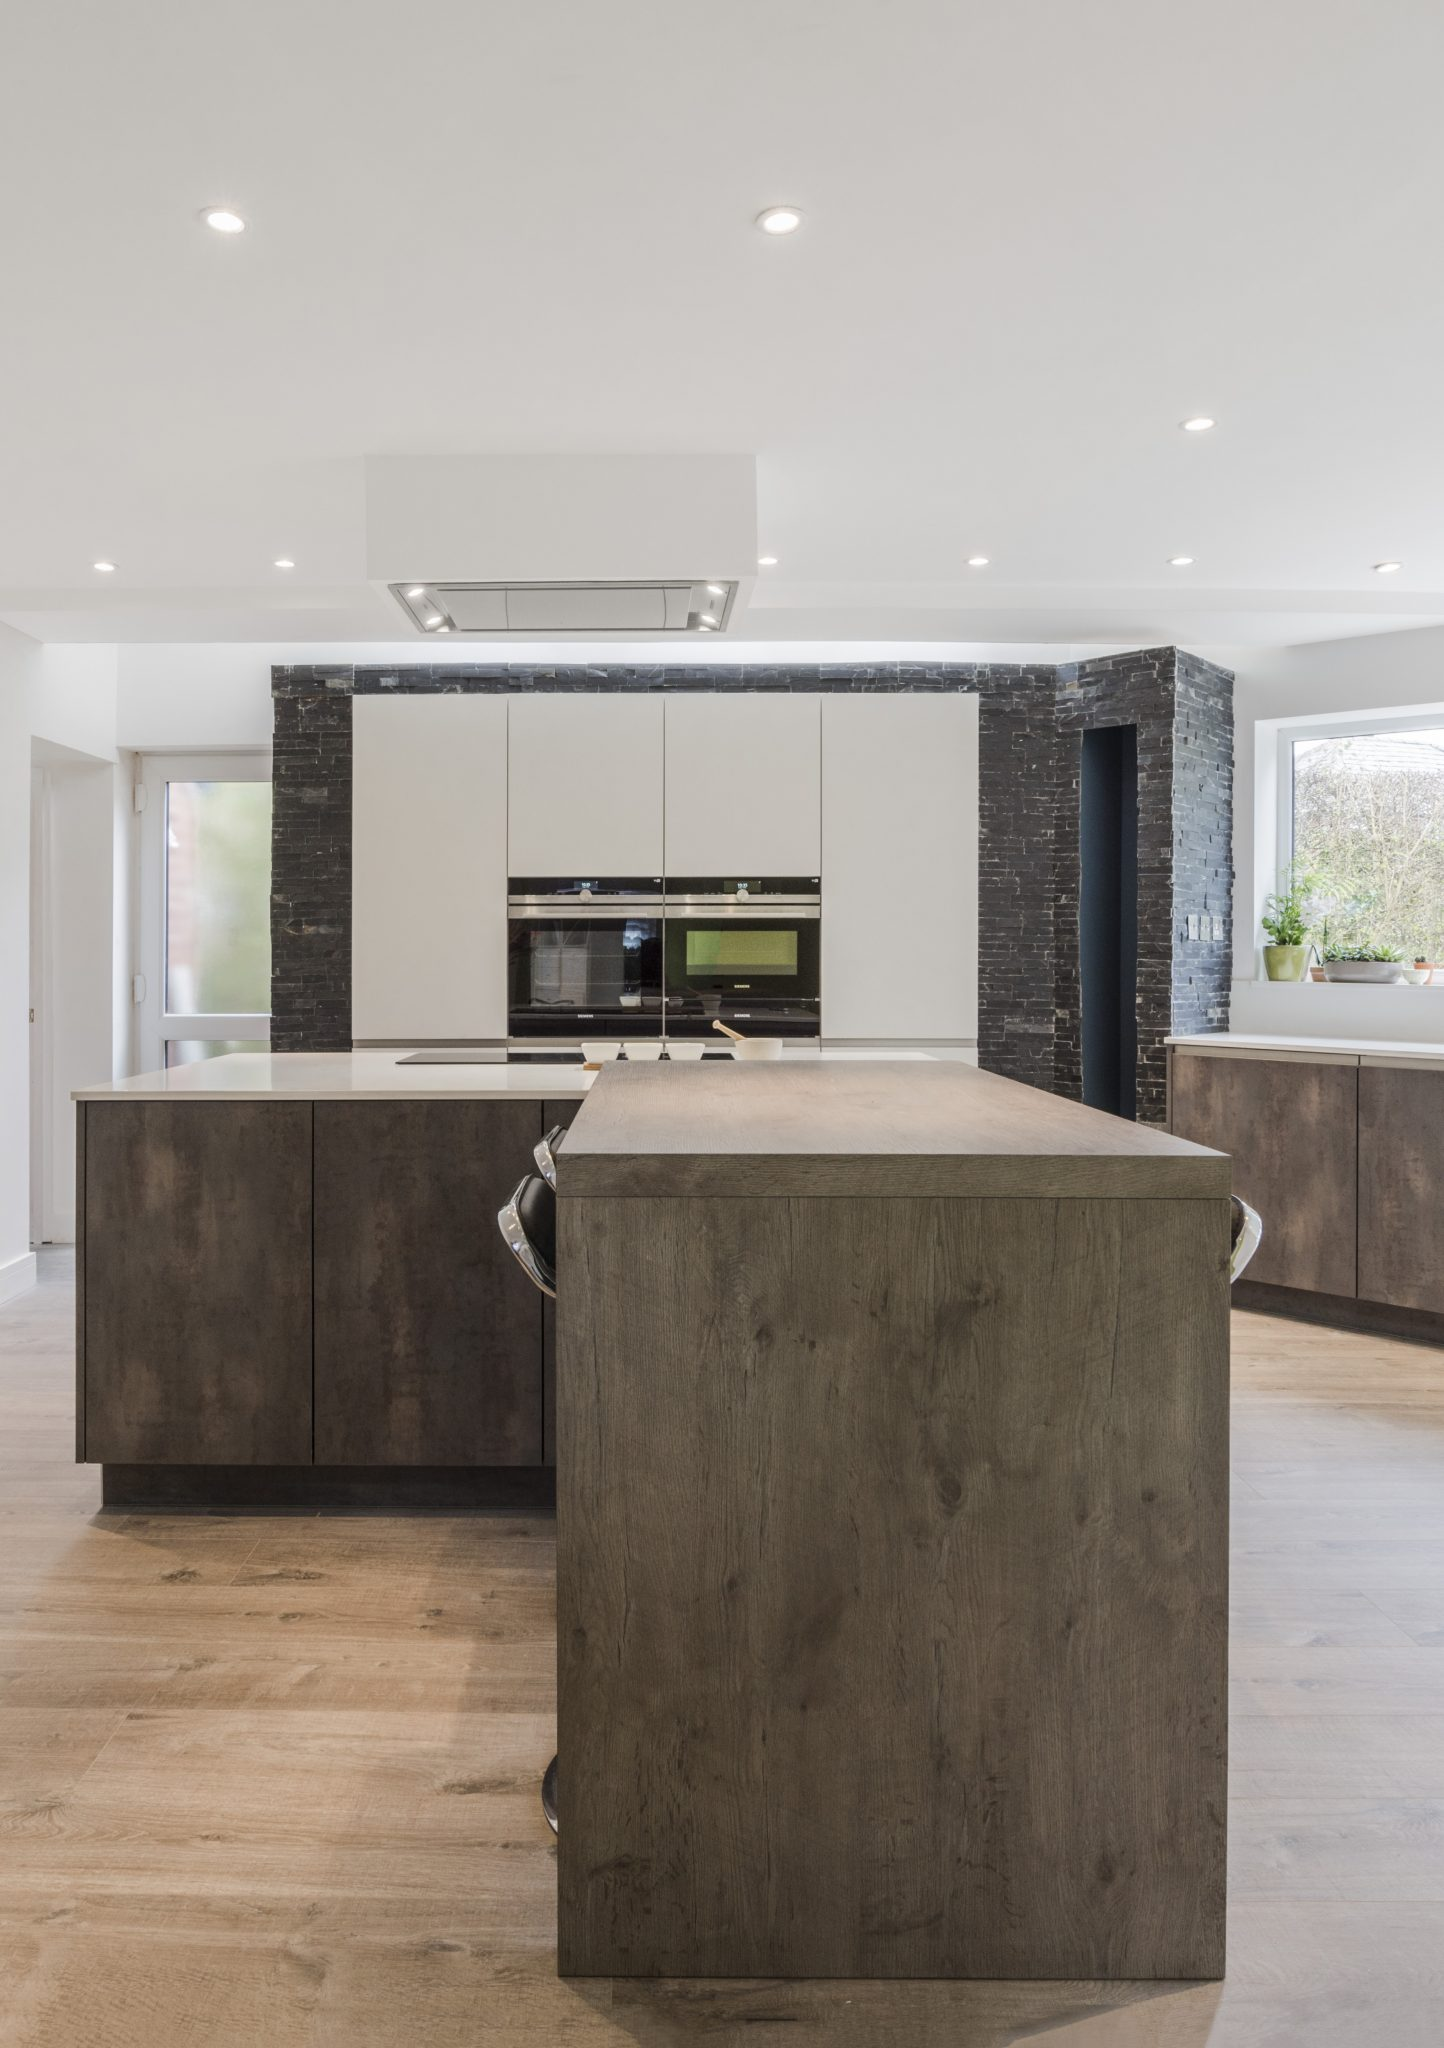 QUality installation by trukitchen kitchen showroom in Wilmslow